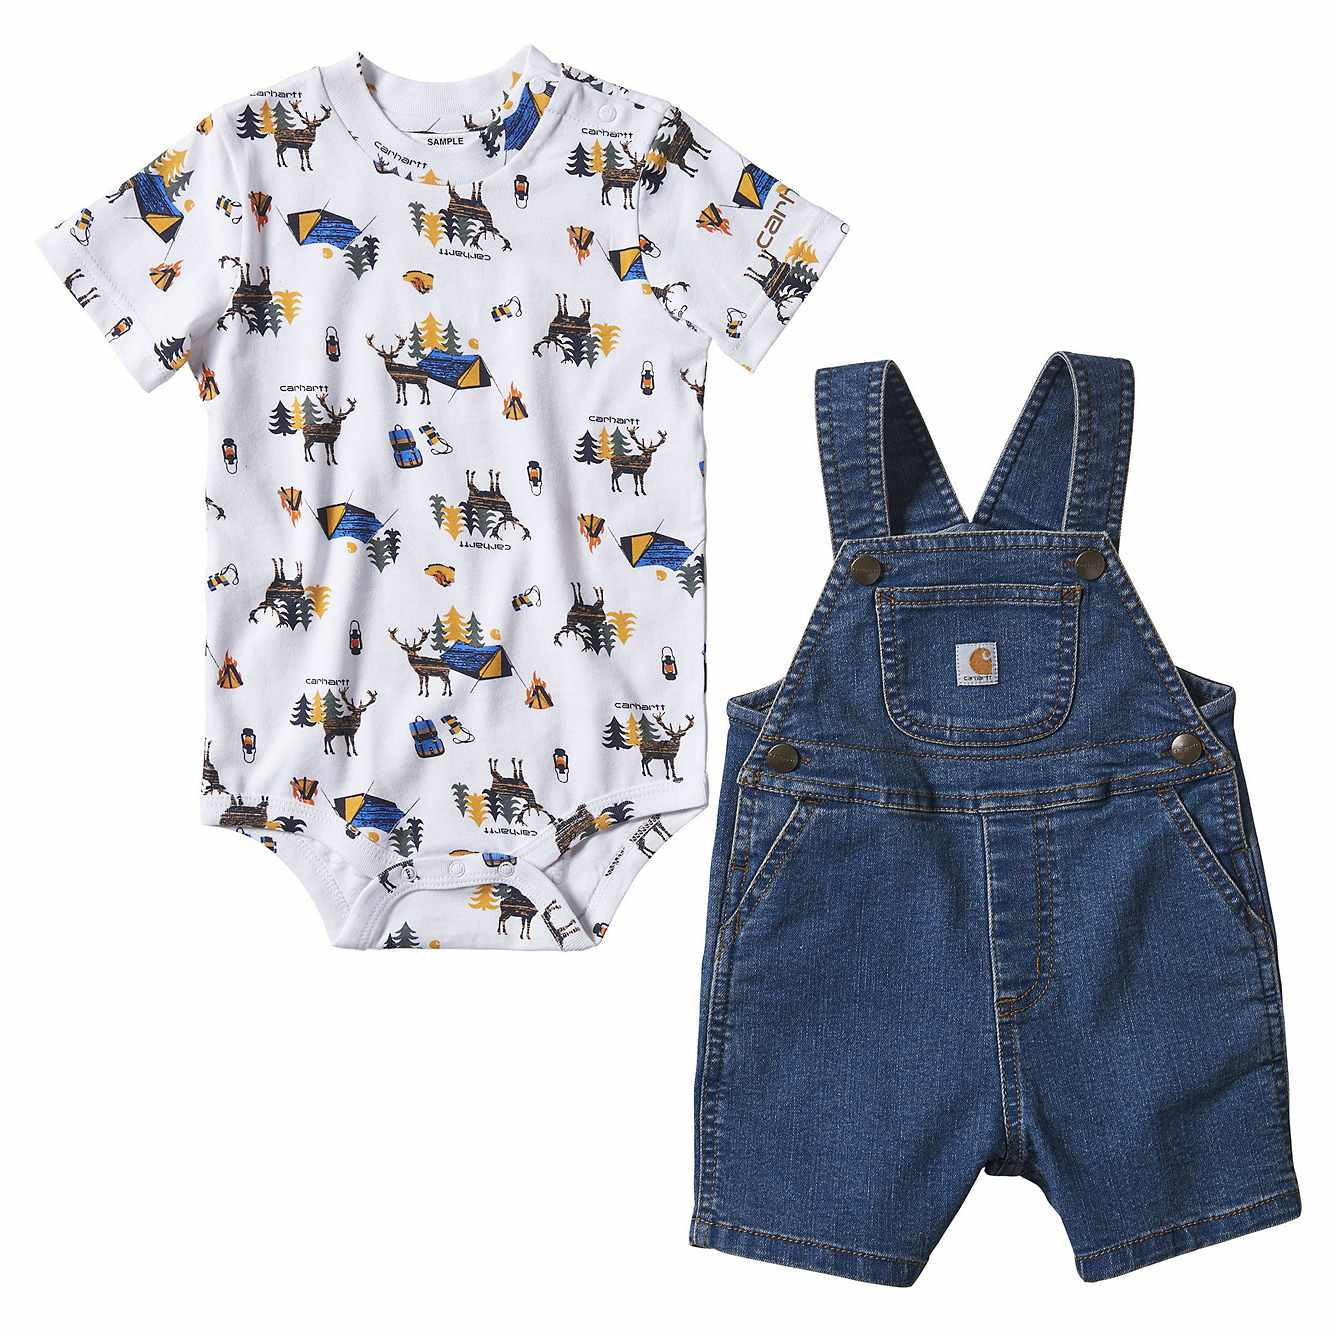 Picture of Denim Shortall Set in Medium Wash